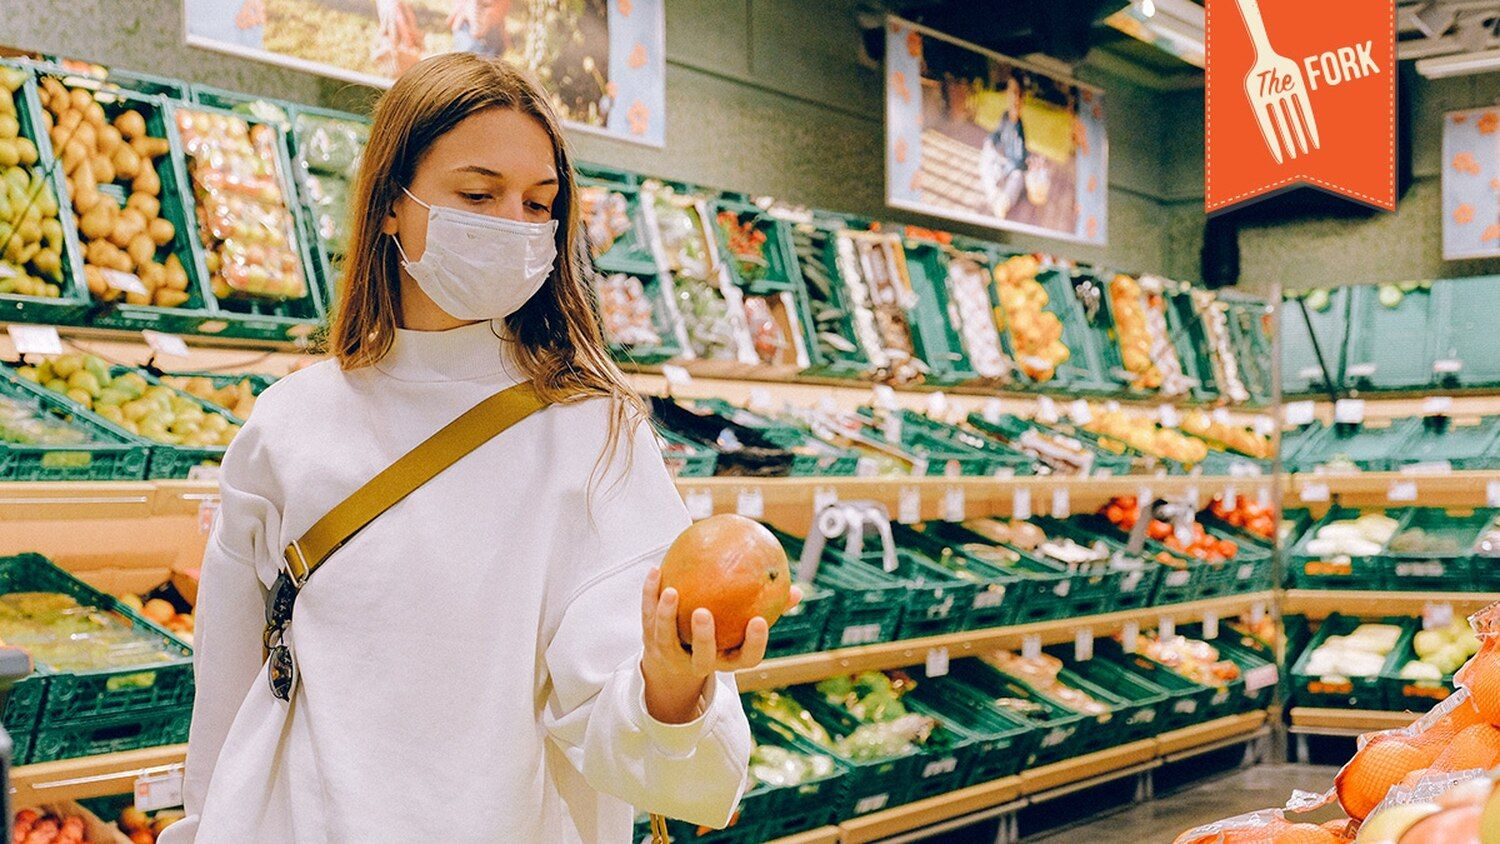 A New Survey Looks at Grocery Shopping Since the Pandemic